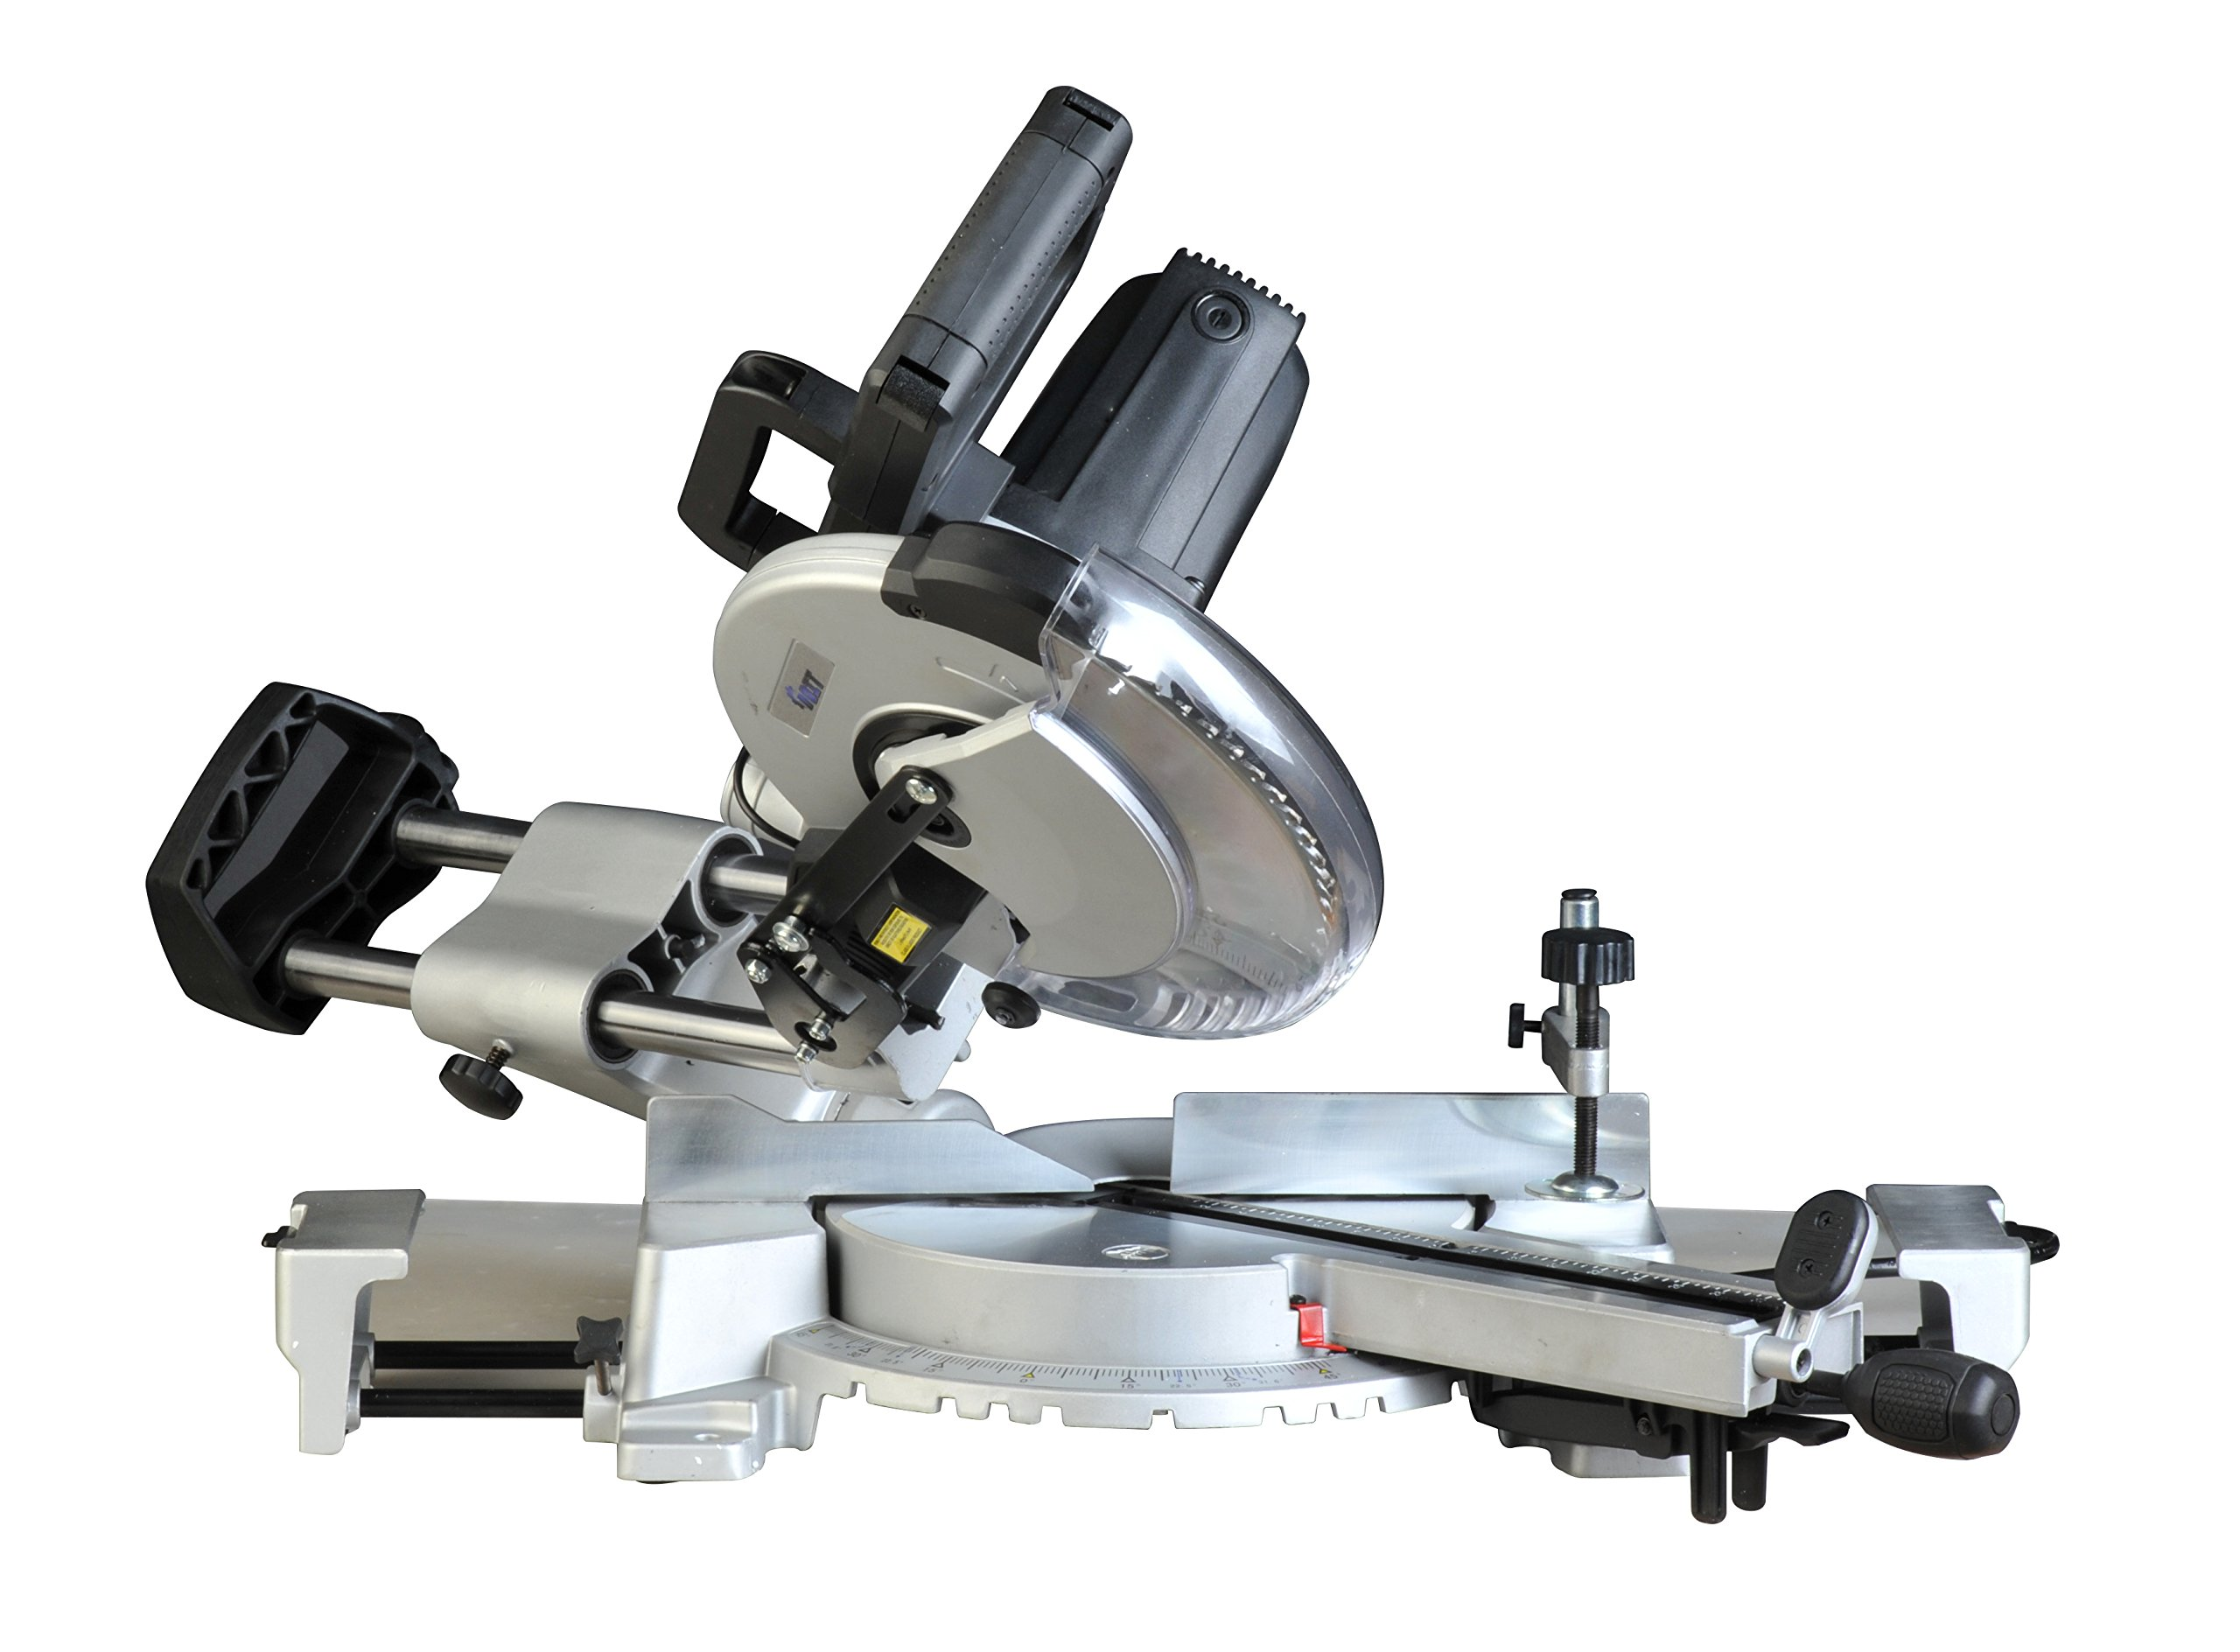 Doitpower 15-Amp 10-Inch Sliding Compound Miter Saw (Equipped with LED Work Light and CarryHandle ) by Doitpower (Image #2)